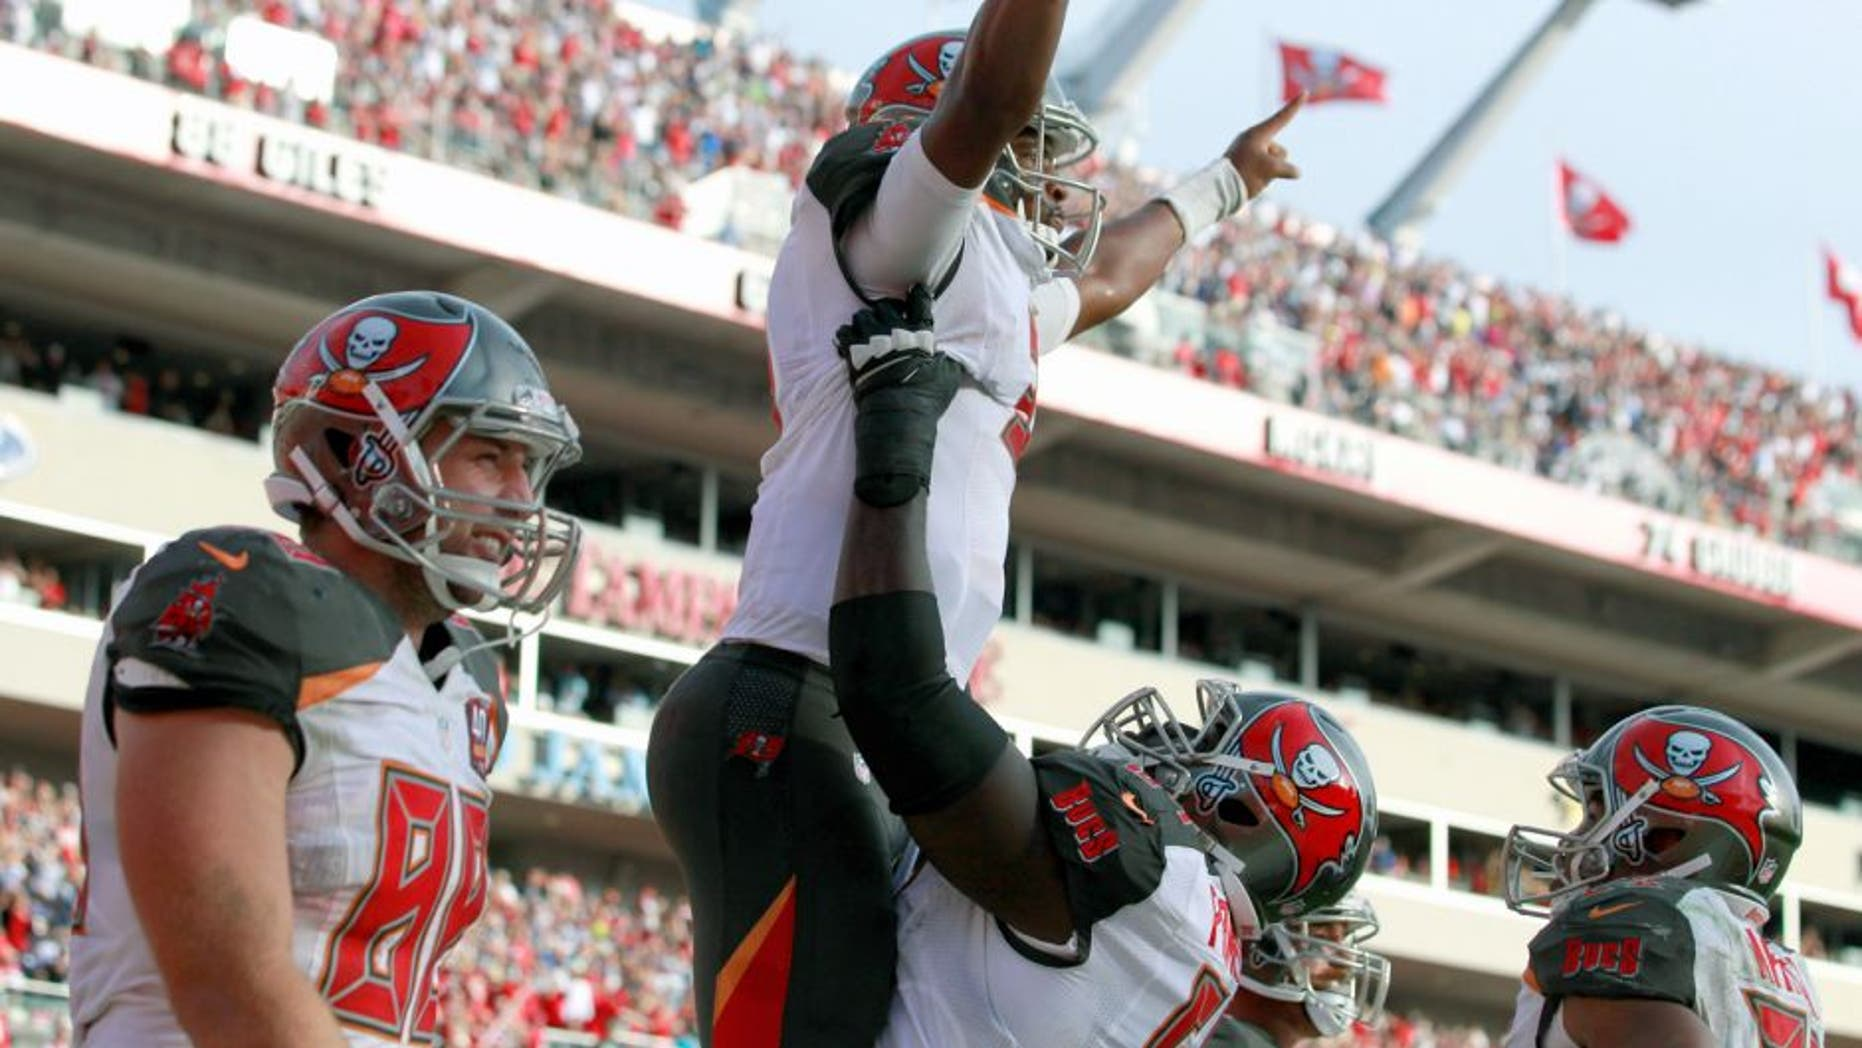 Nov 15, 2015; Tampa, FL, USA; Tampa Bay Buccaneers quarterback Jameis Winston (3) is congratulated by tTampa Bay Buccaneers offensive guard Kevin Pamphile (64) as he ran the ball in for a touchdown during the fourth quarter against the Dallas Cowboys at Raymond James Stadium. Mandatory Credit: Kim Klement-USA TODAY Sports